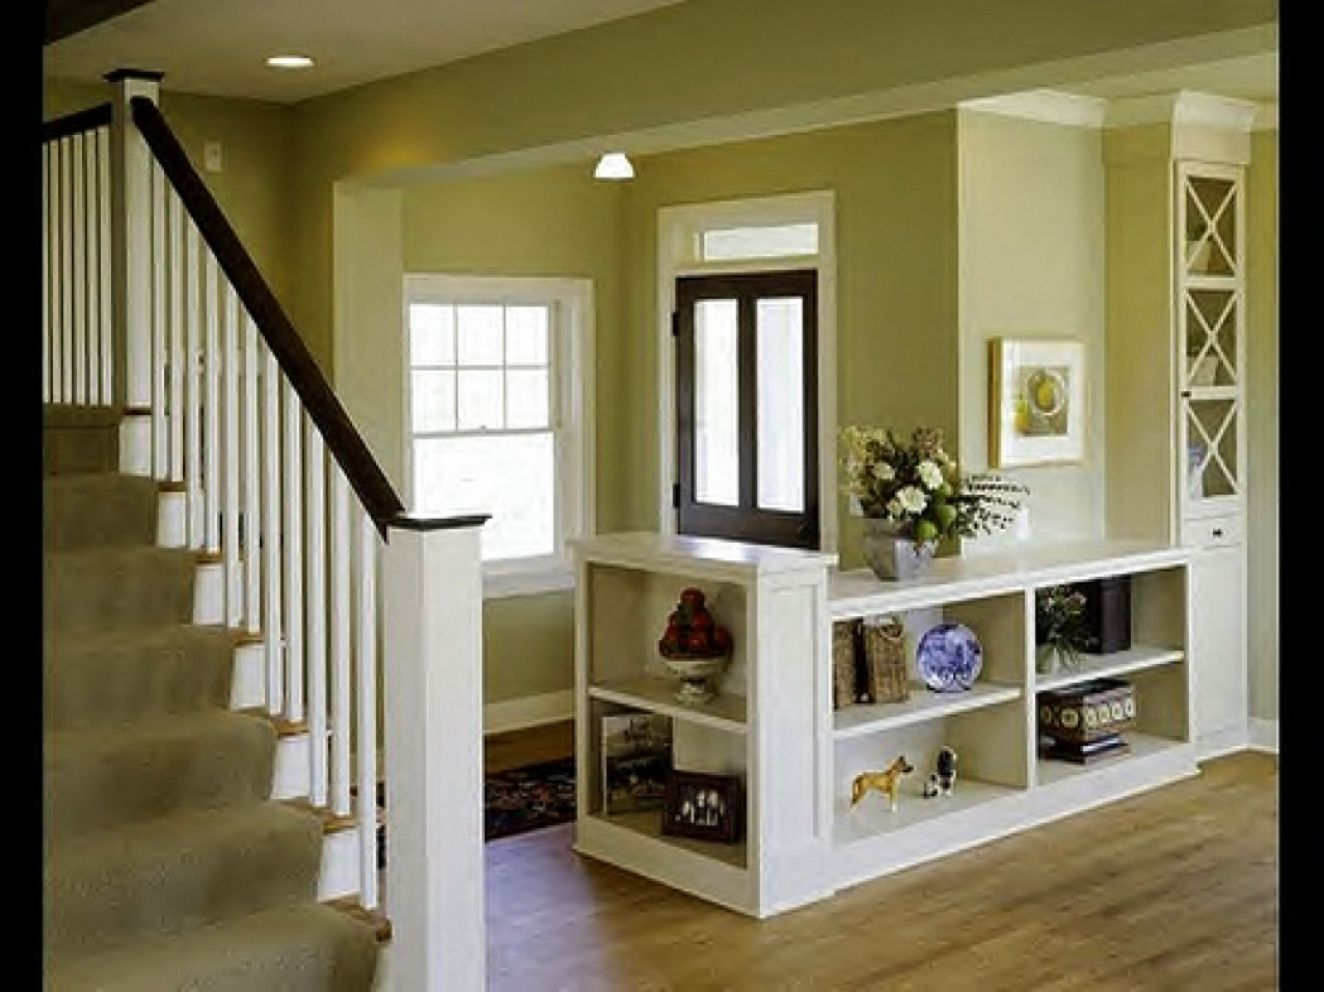 Home interior paint colors home interior design for small houses  interior paint color schemes